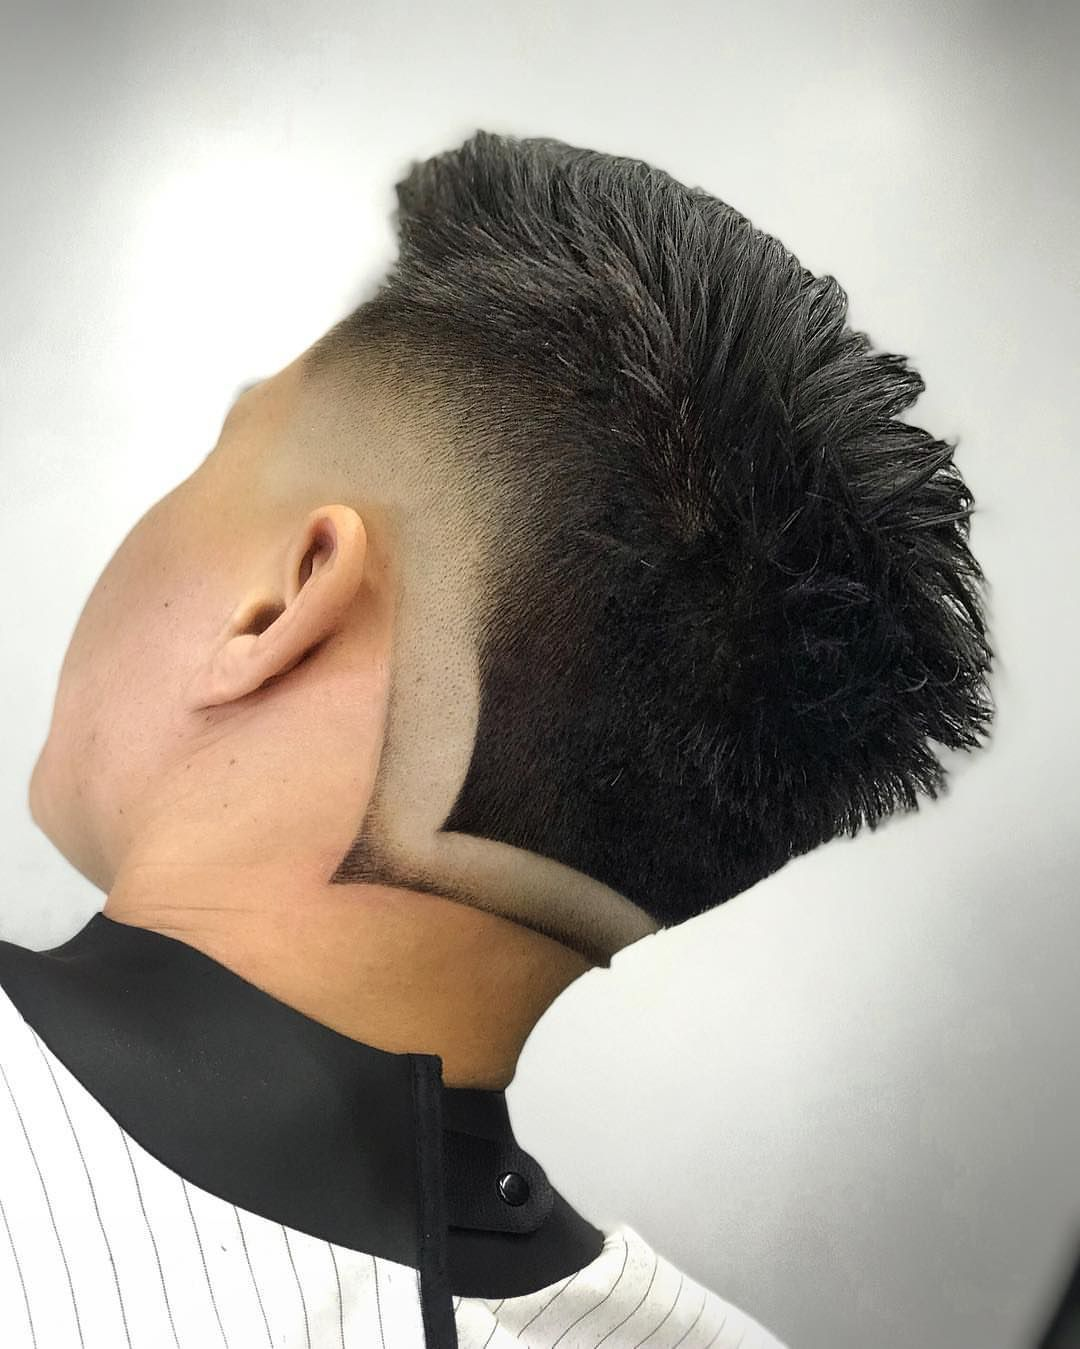 35 Awesome Design Haircuts For Men Men S Hairstyles Mens Hairstyles Haircut Designs Haircuts For Men